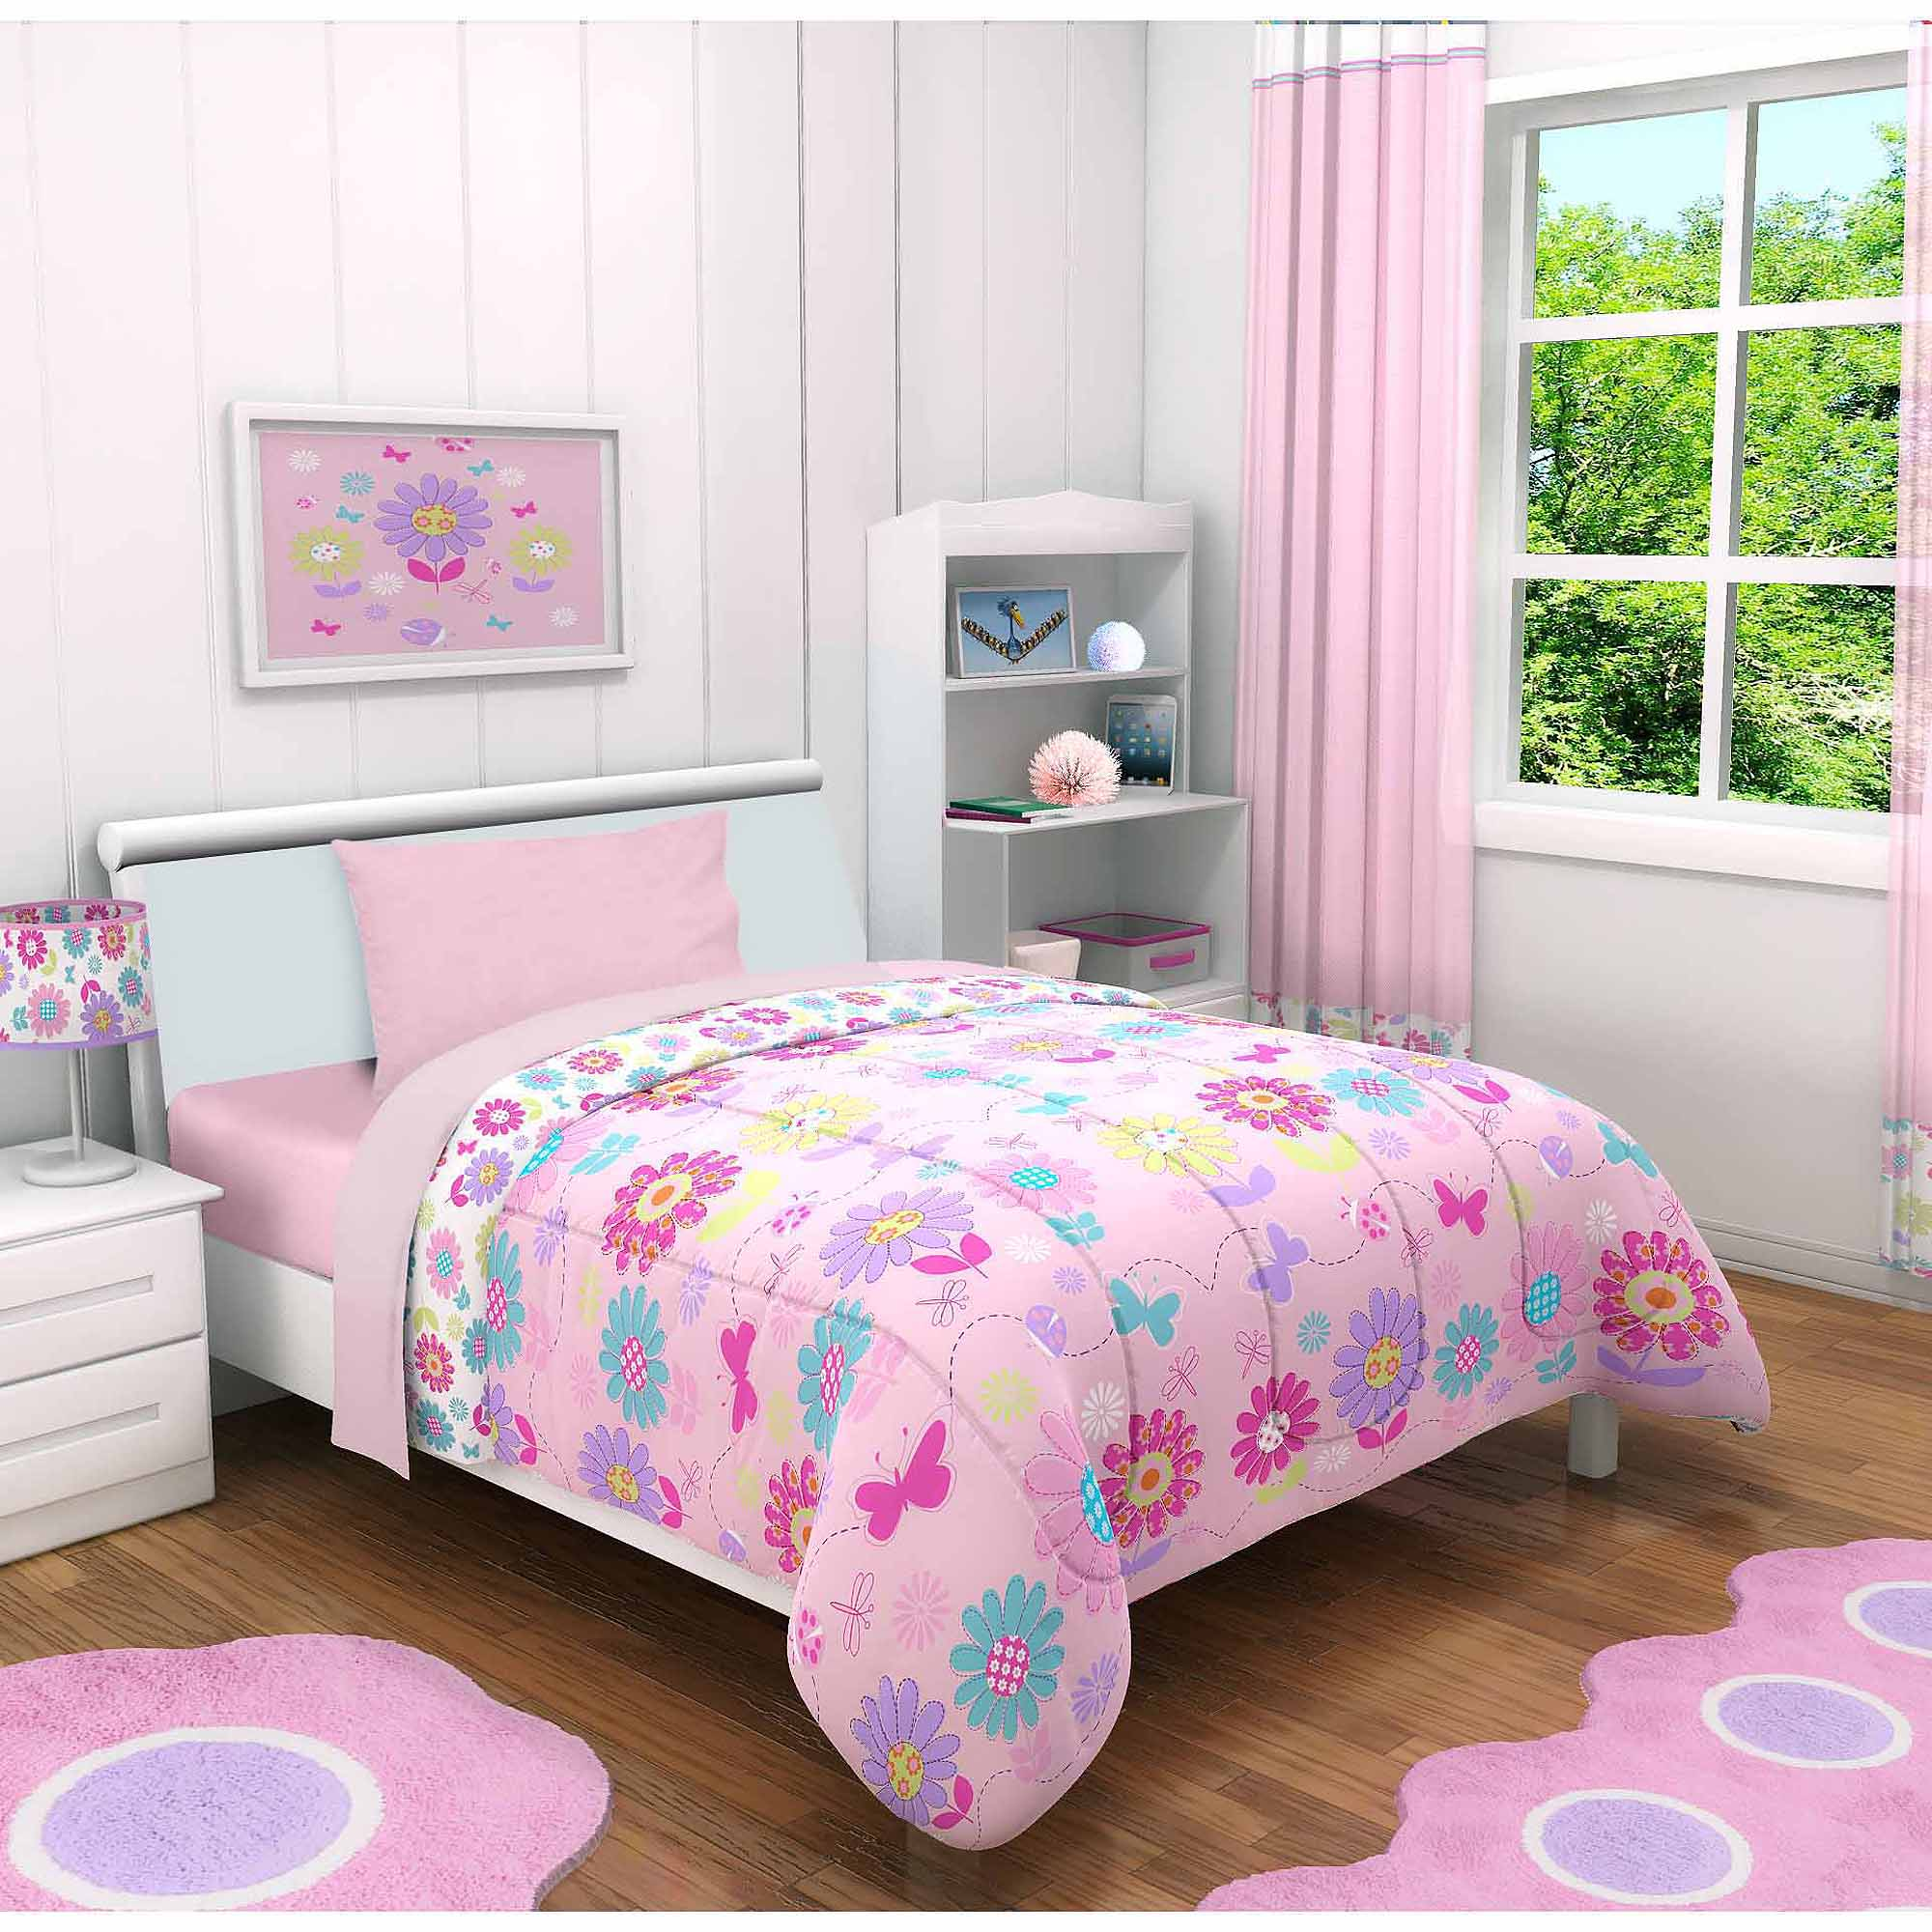 Idea Nuova Daisy Flowers 3-Piece Toddler Bedding Set with BONUS Matching Pillow Case